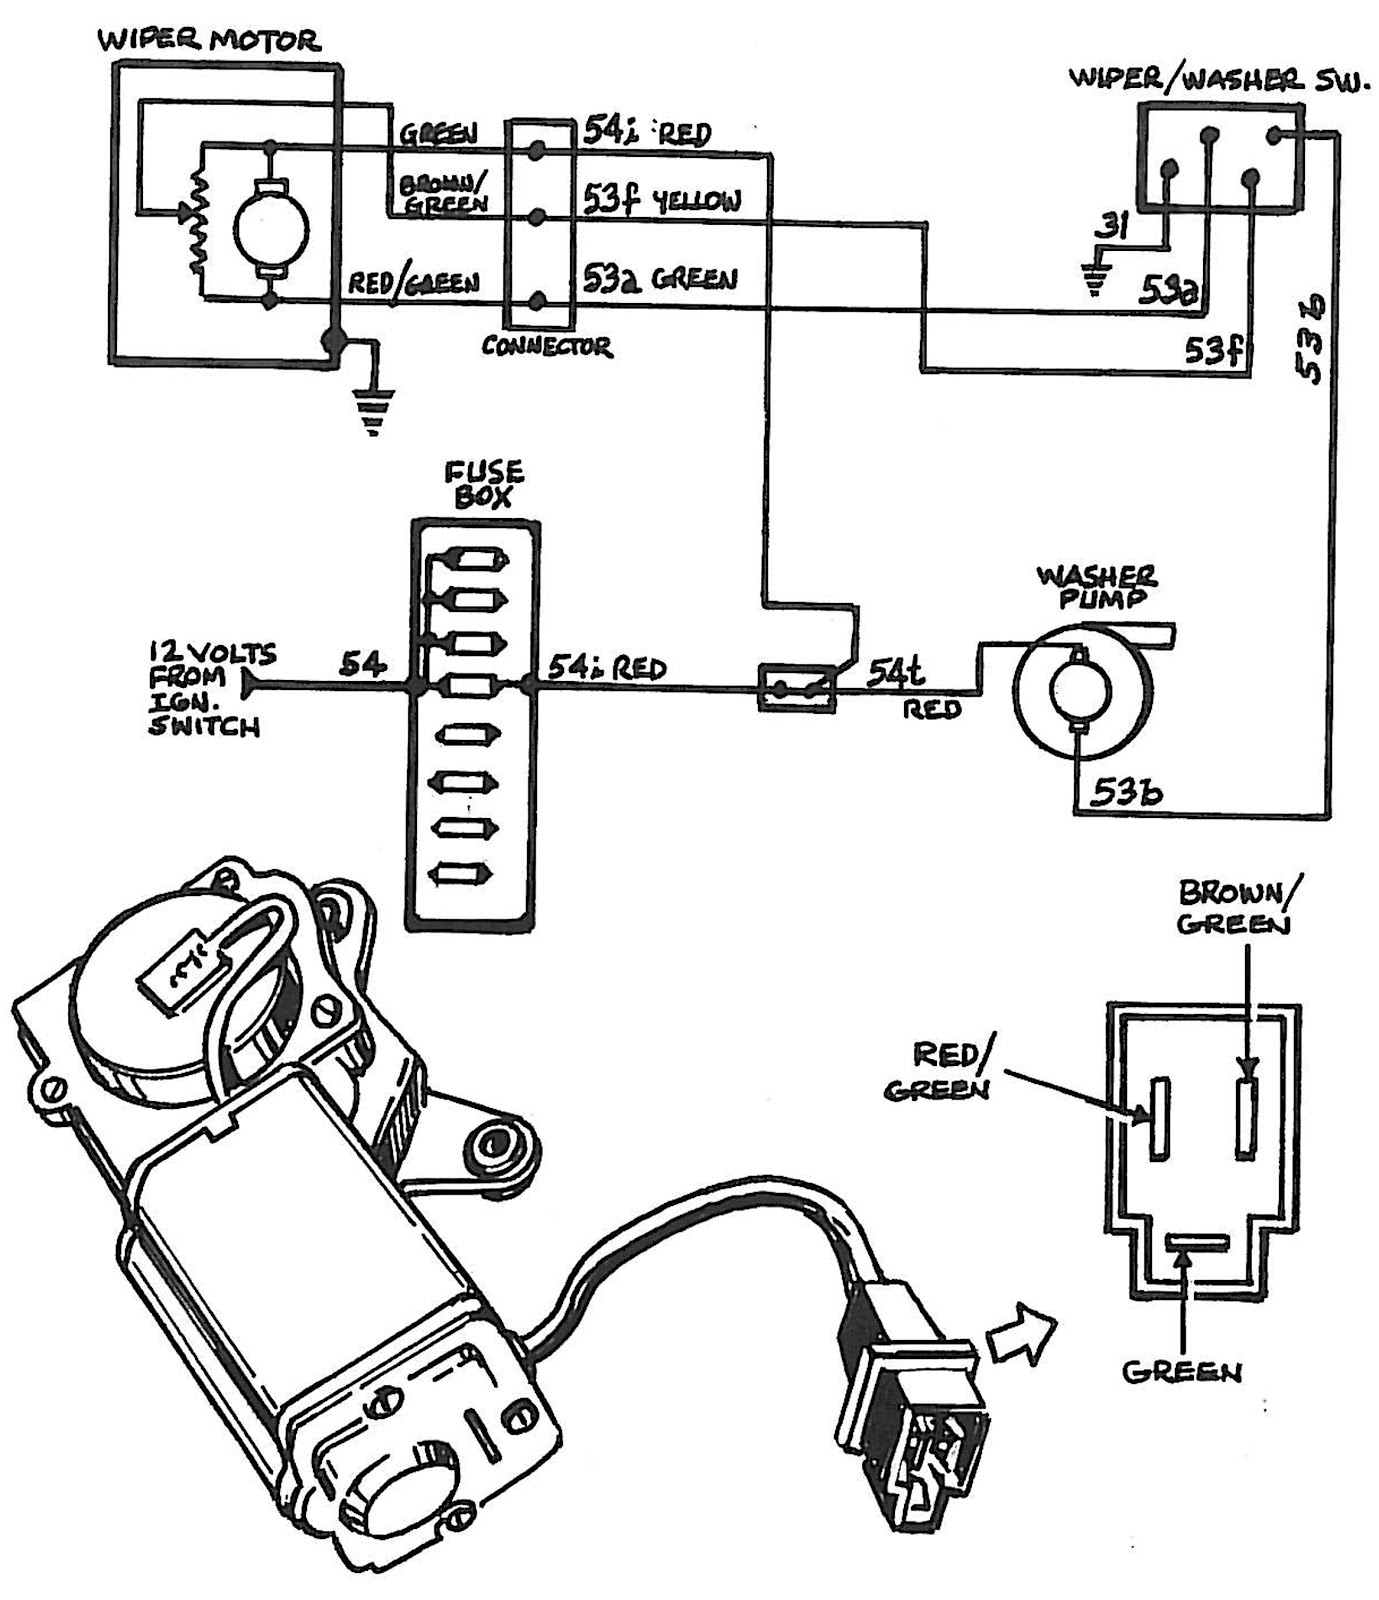 2012 02 01 archive moreover 2 Prong Flasher Wiring Diagram furthermore Starters together with Must Do Starterrelay Mod For The S30 Z also 12 Volt Air  pressor Pressure Switch Wiring. on 12 volt relay switch wiring diagram